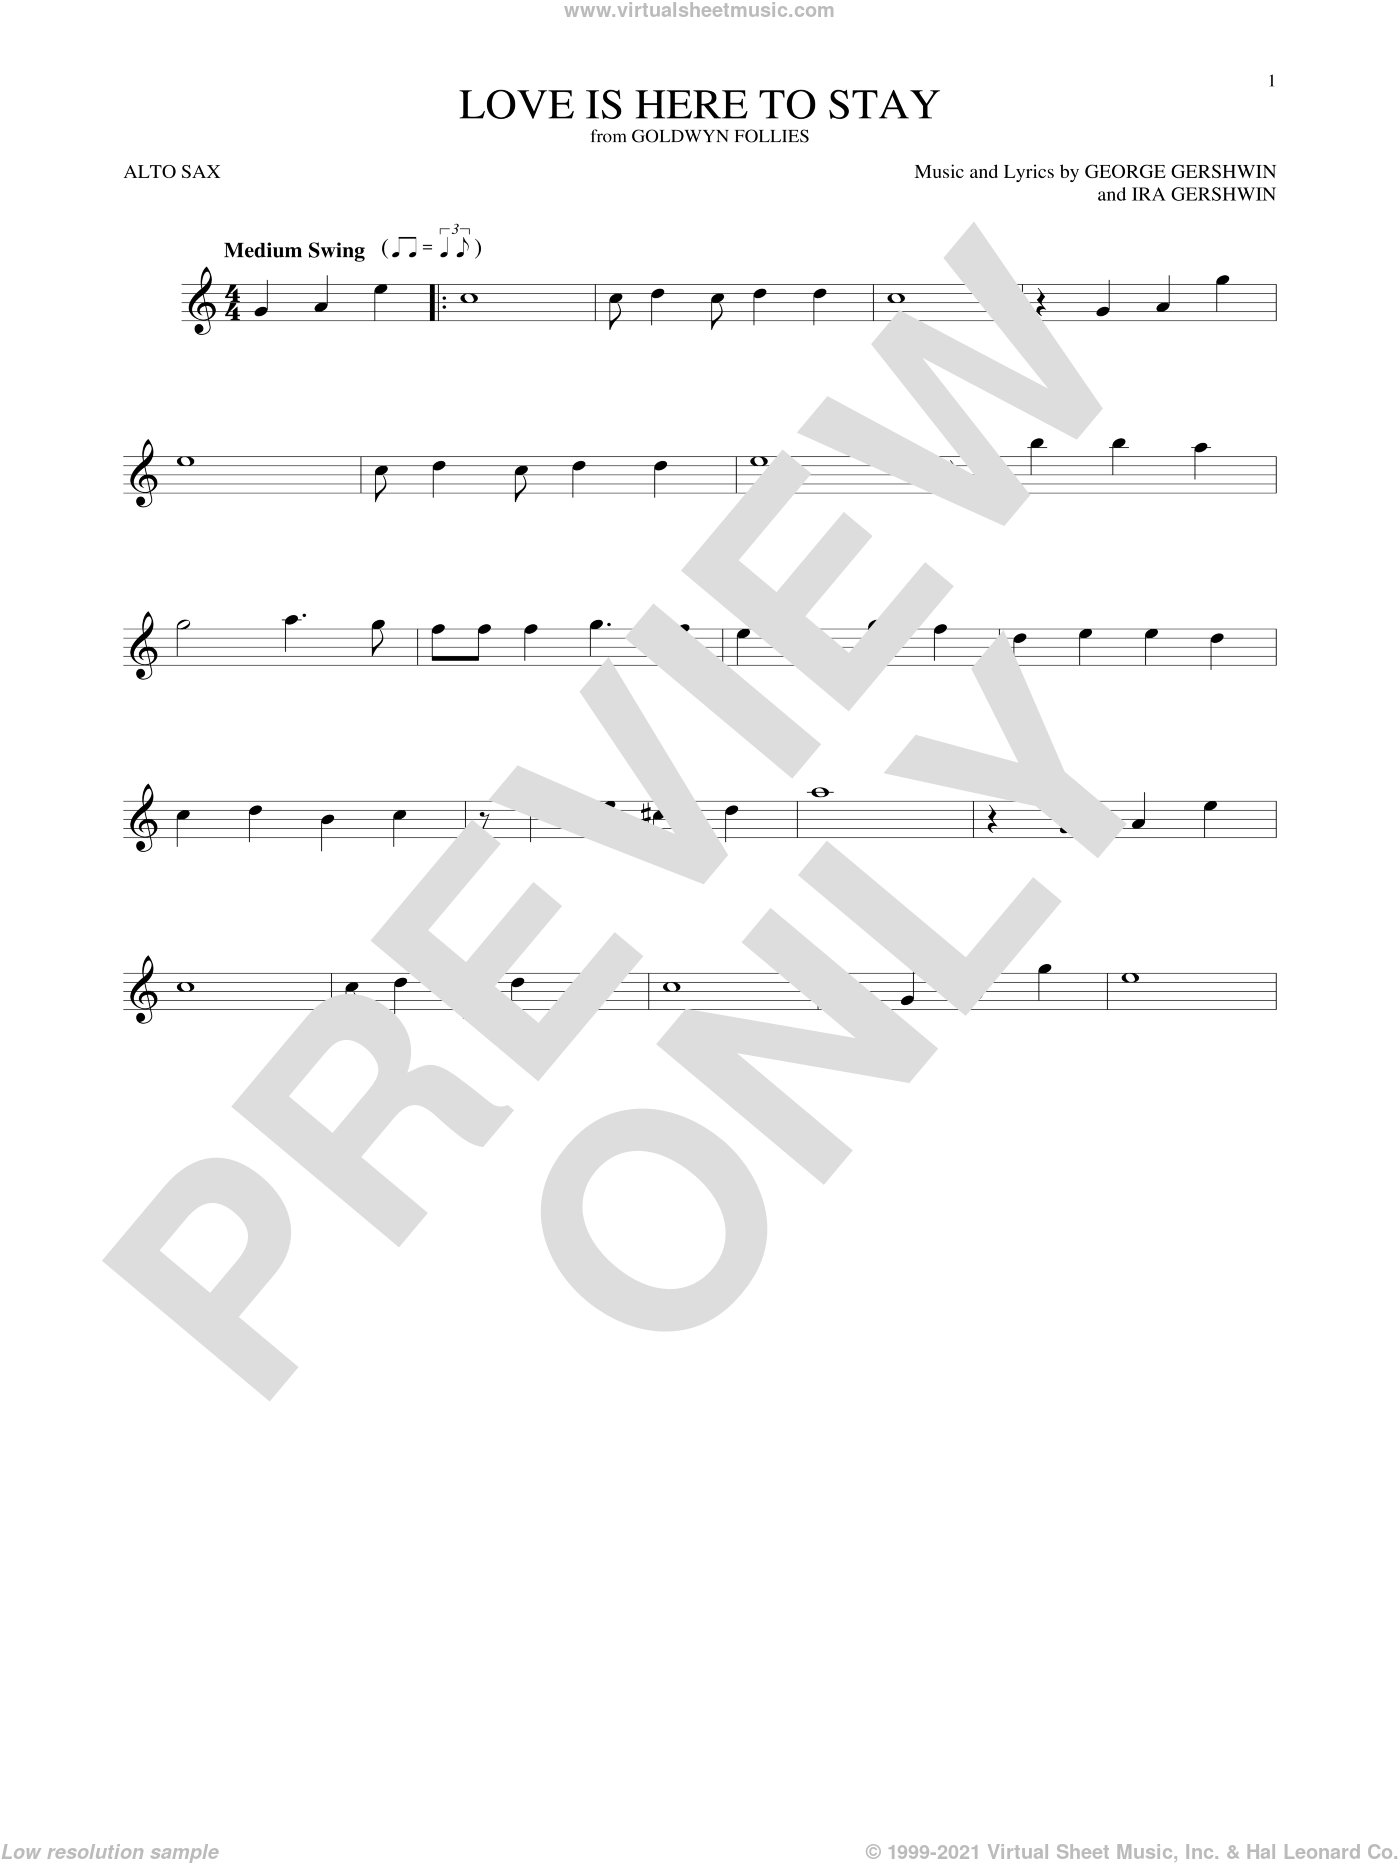 Love Is Here To Stay sheet music for alto saxophone solo by George Gershwin and Ira Gershwin, intermediate skill level